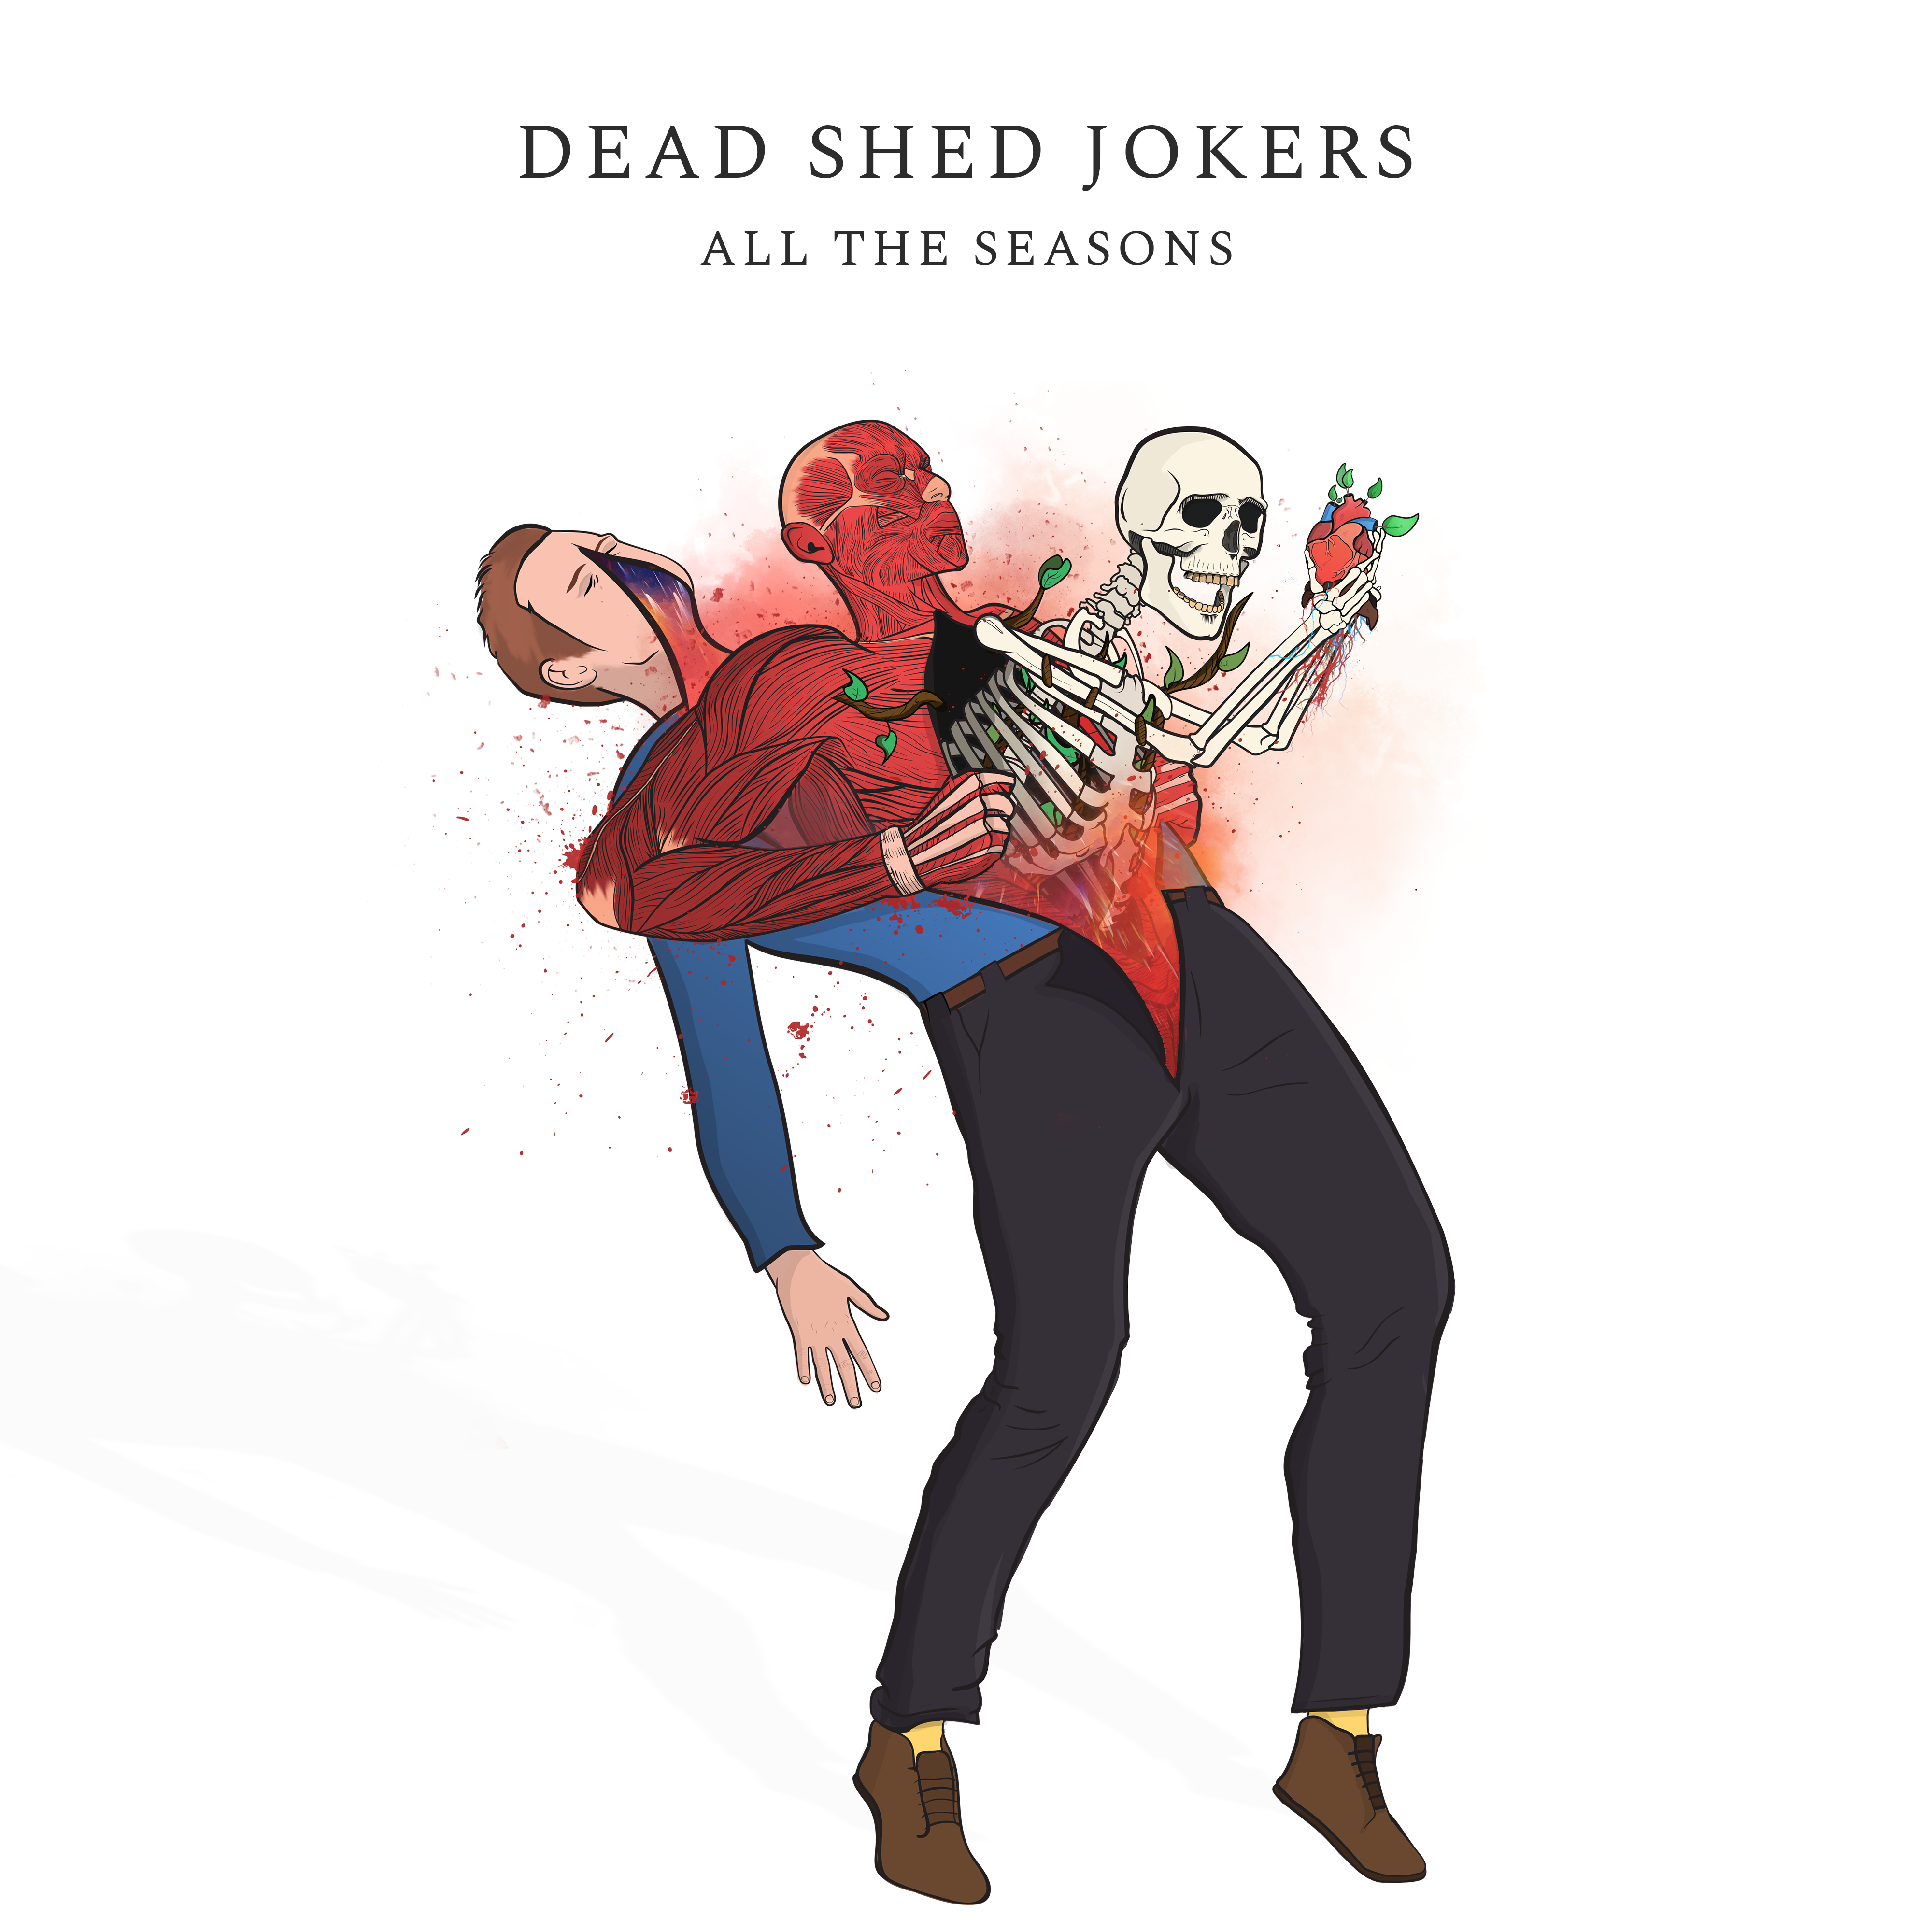 Dead Shed Jokers - All the Seasons (Cover Artwork)